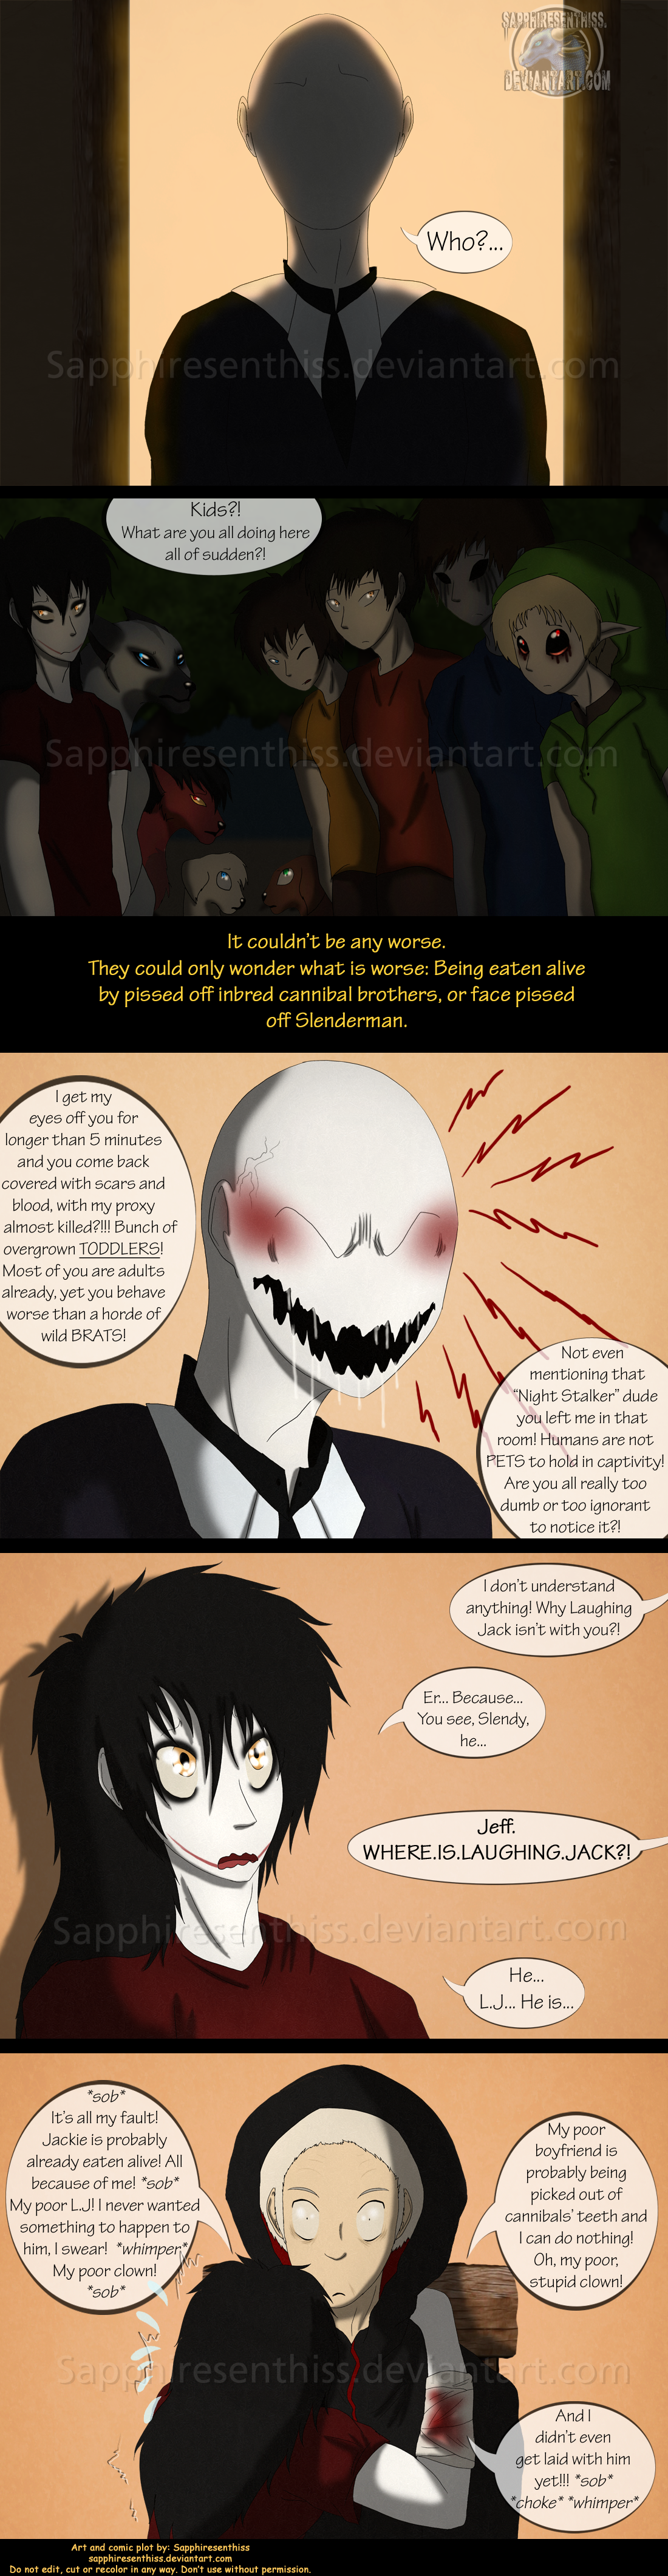 adventures with jeff the killer page 156 by